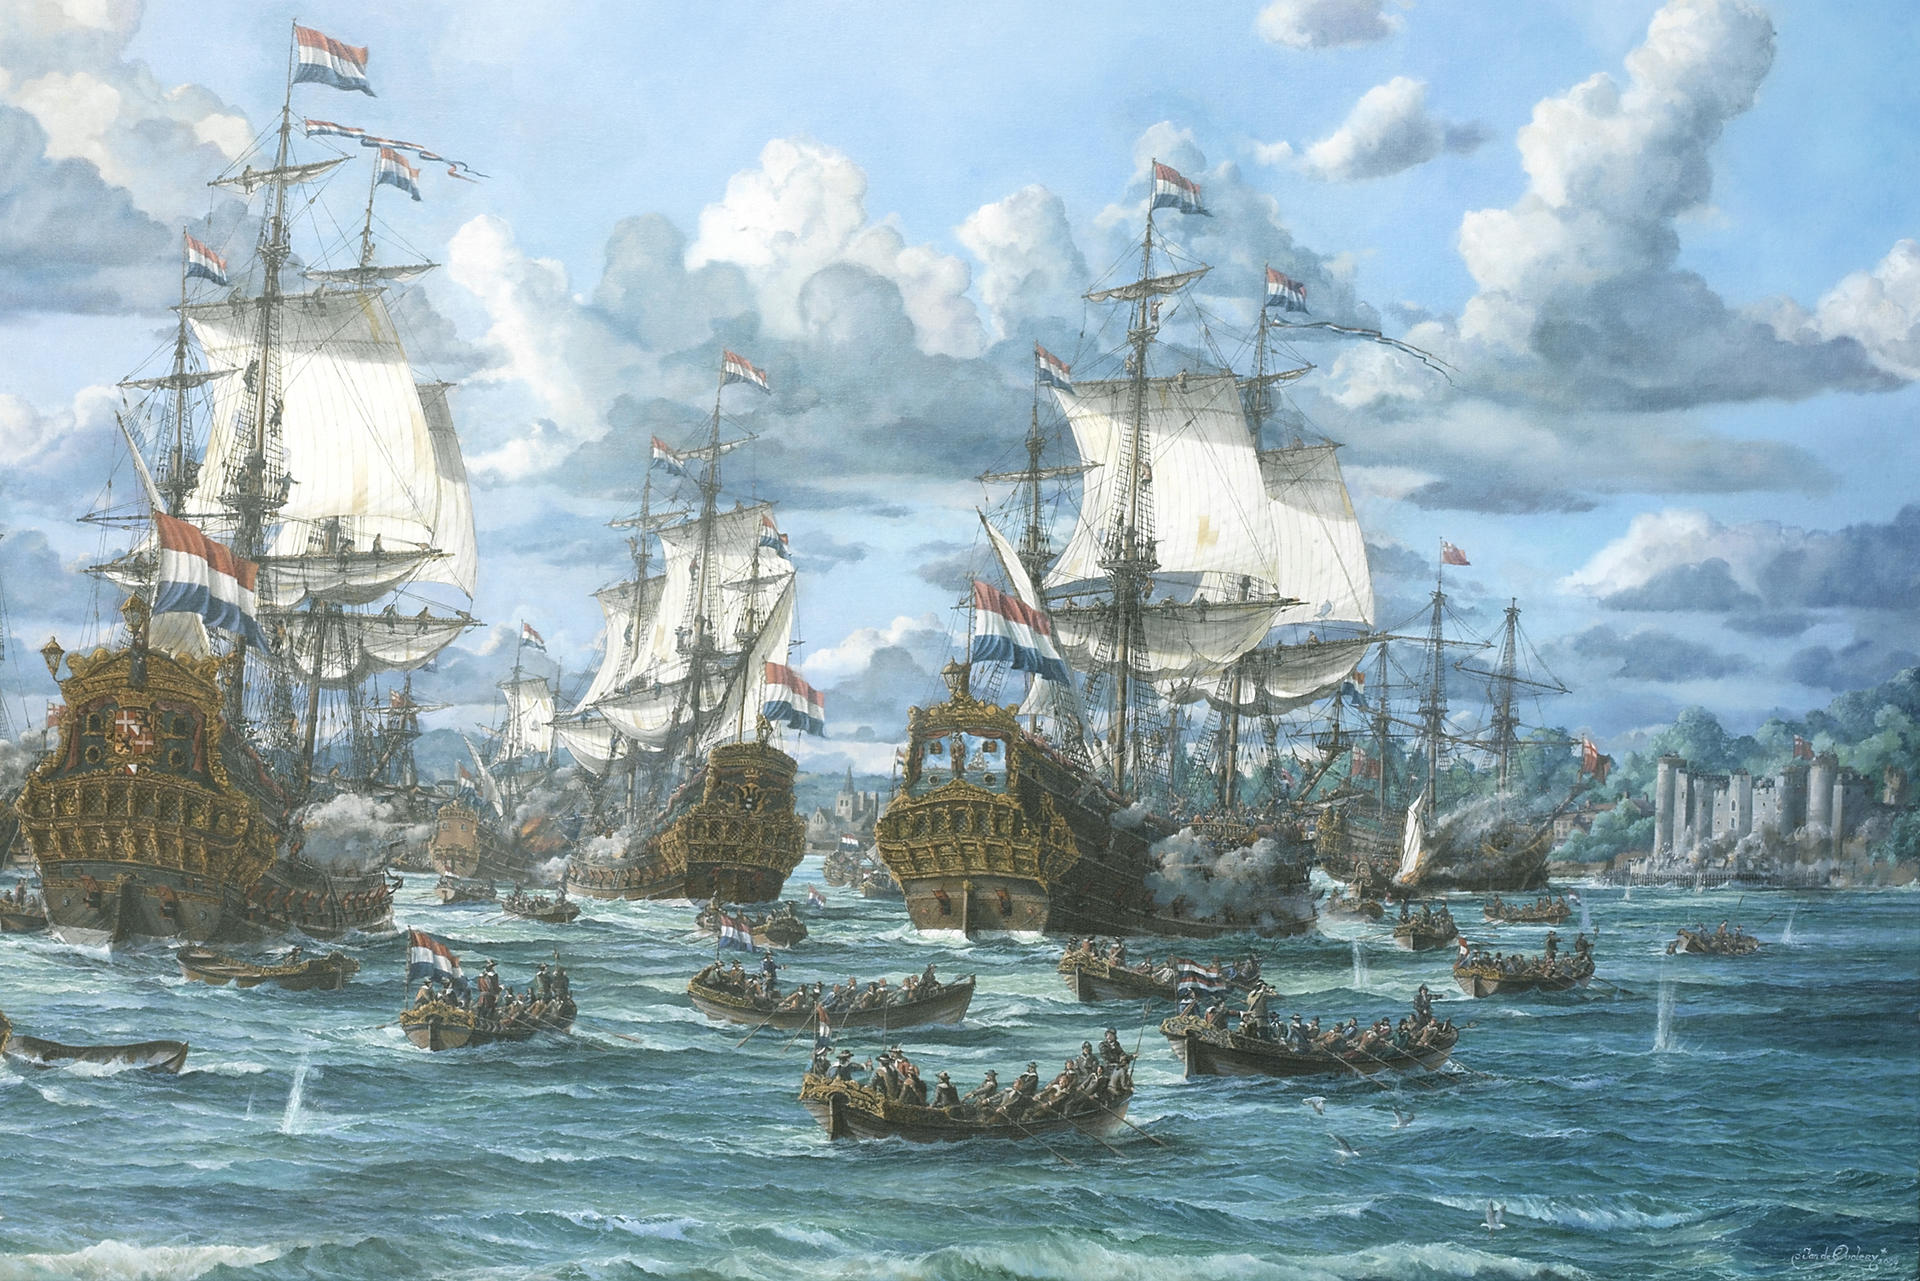 Battle of Medway / Tocht naar Chatham 2017